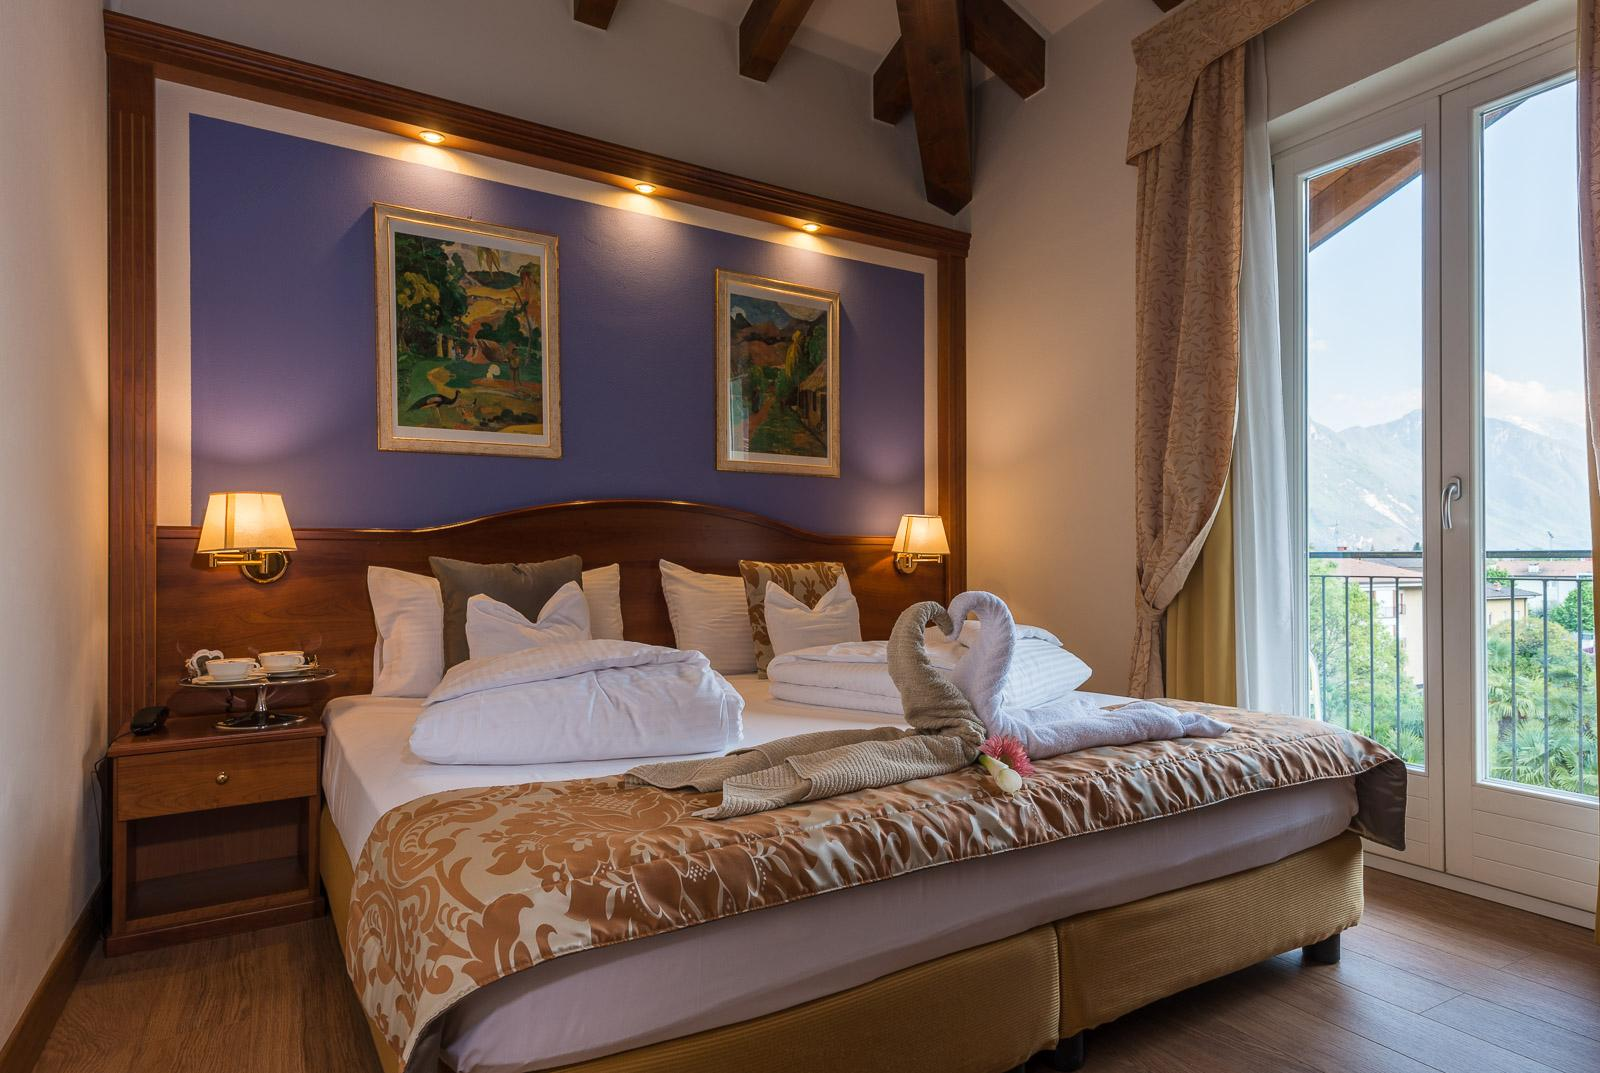 hotel-villa-nicolli-junior-suite-romantica